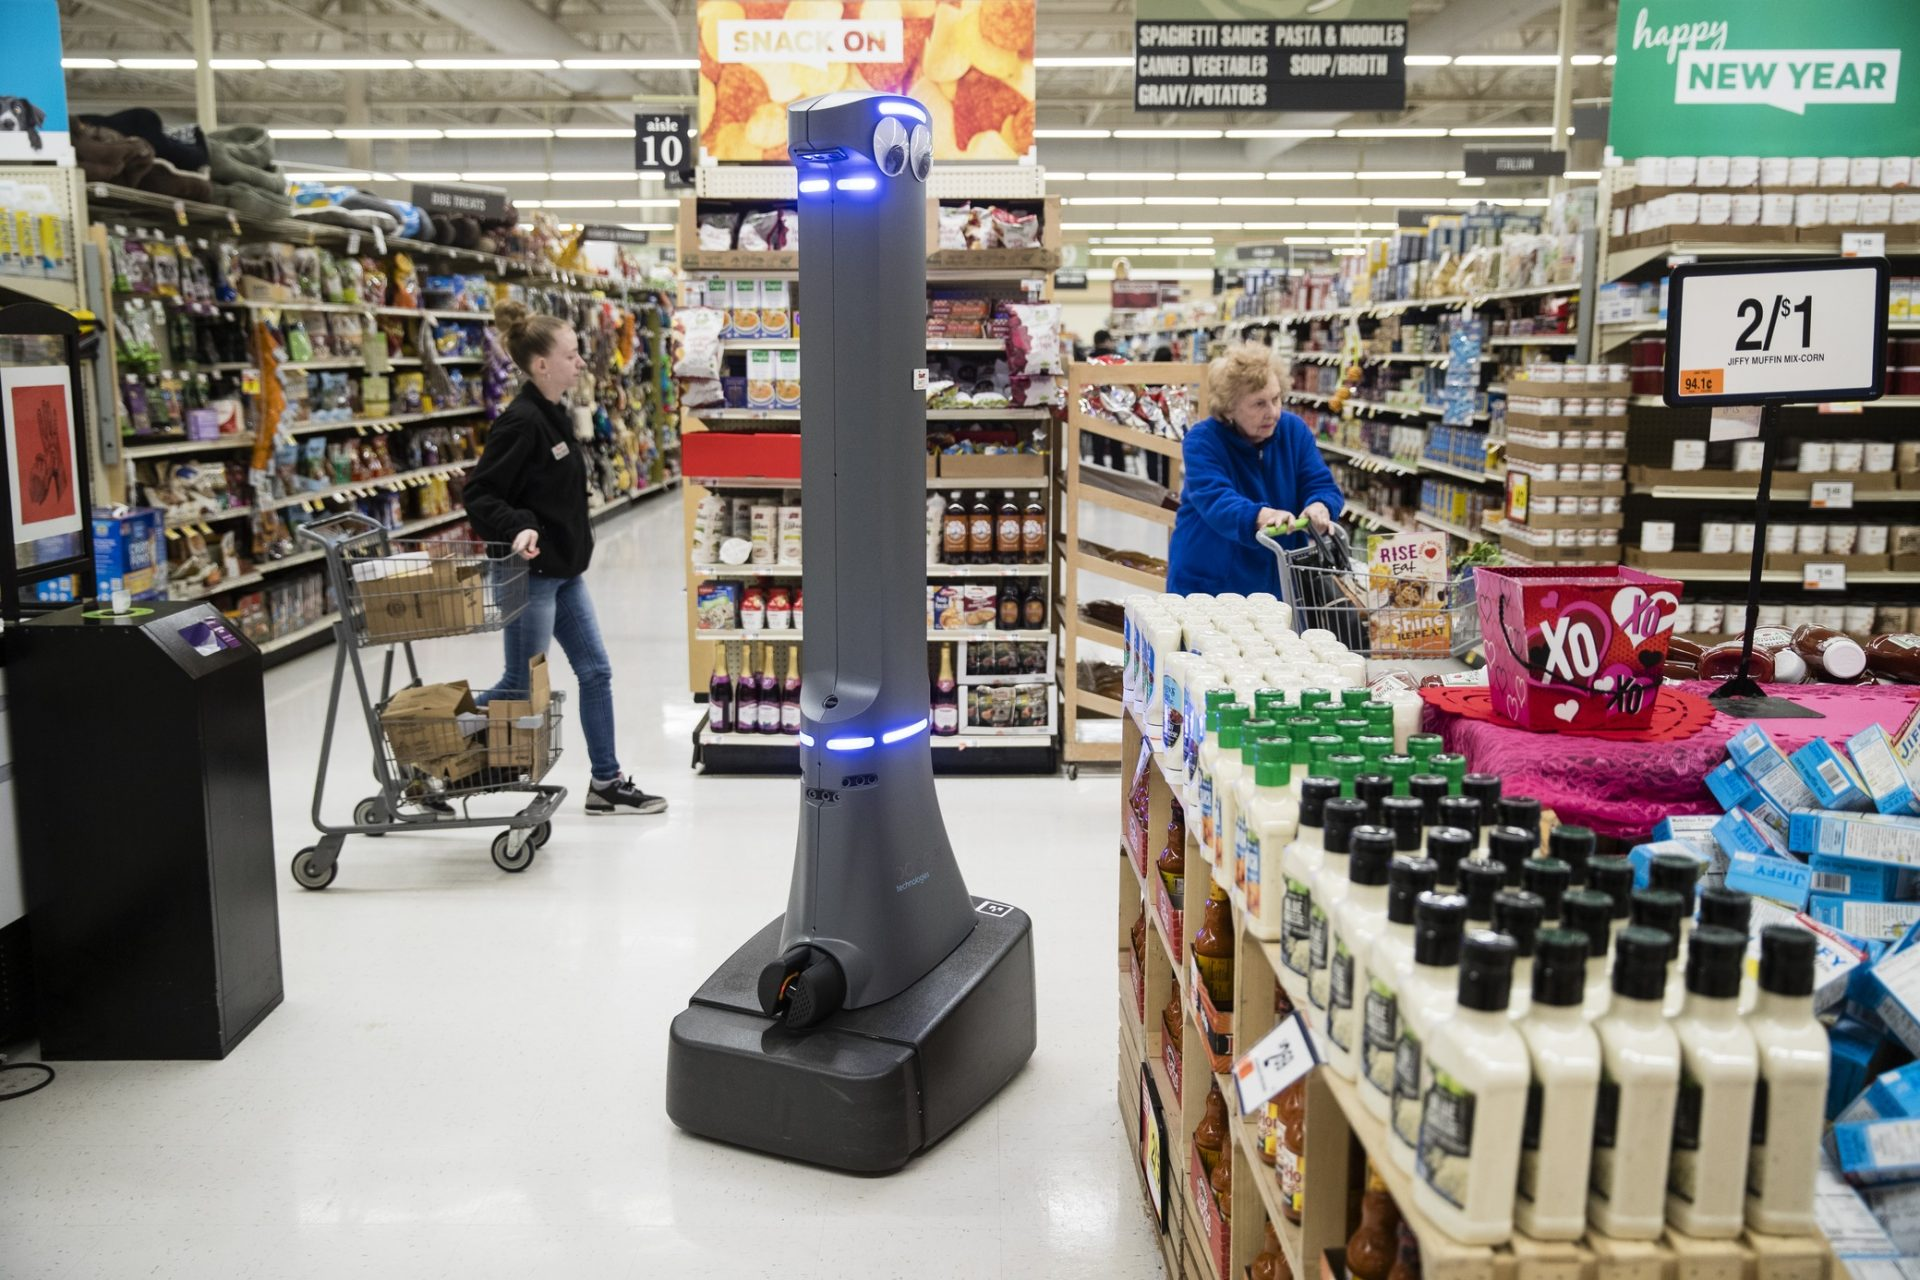 A robot named Marty cleans the floors at a Giant grocery story in Harrisburg, Pa., Tuesday, Jan. 15, 2019. On Monday, the Carlisle-based Giant Food Stores announced new robotic assistants will be arriving at all 172 Giant stores by the middle of this year. The chain's parent company says it plans to eventually deploy the robots to nearly 500 stores.